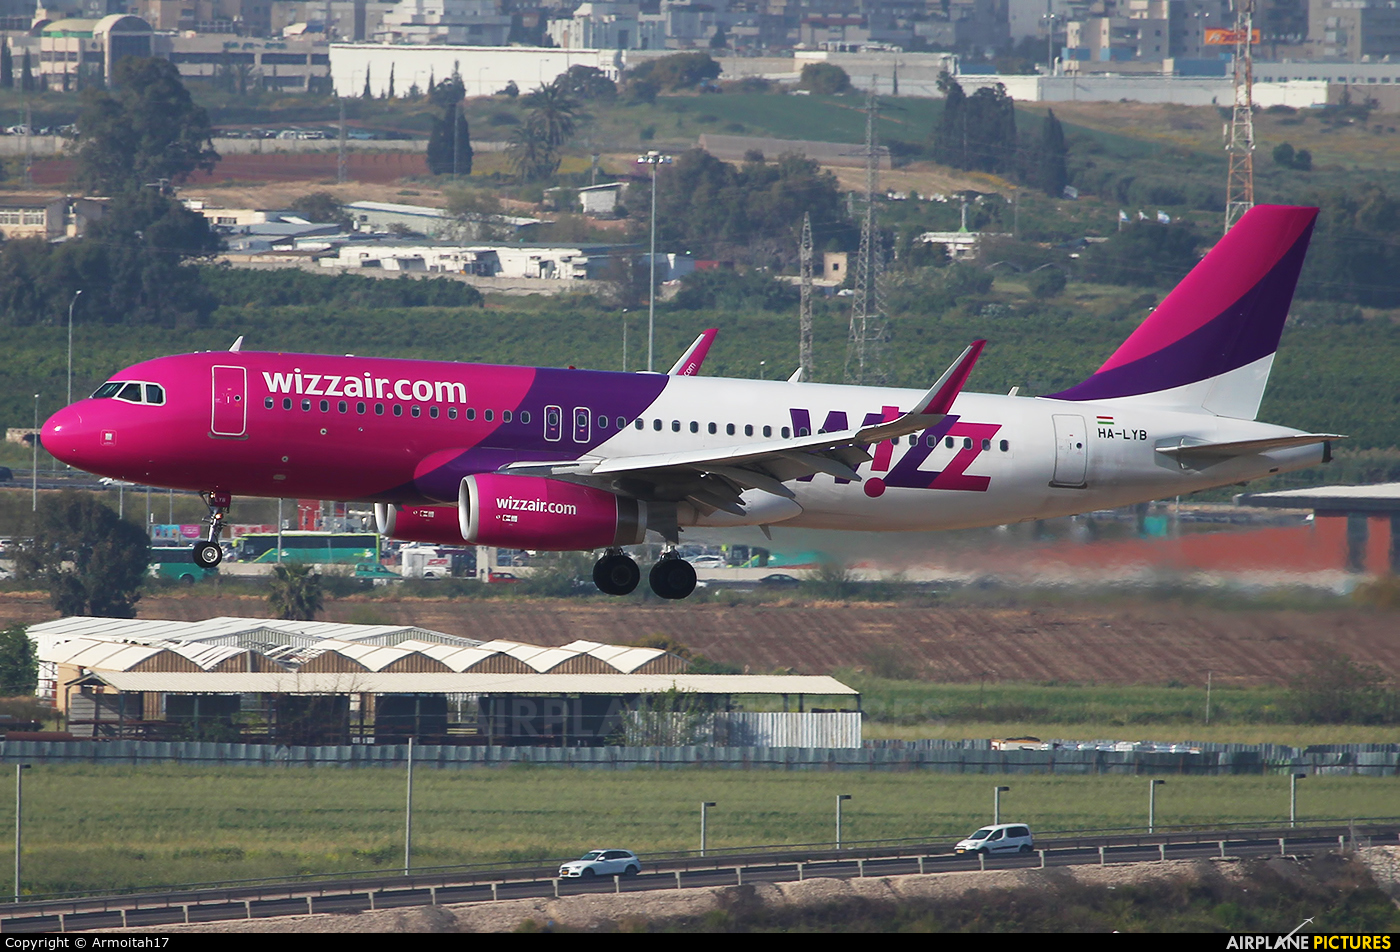 Wizz Air HA-LYB aircraft at Tel Aviv - Ben Gurion